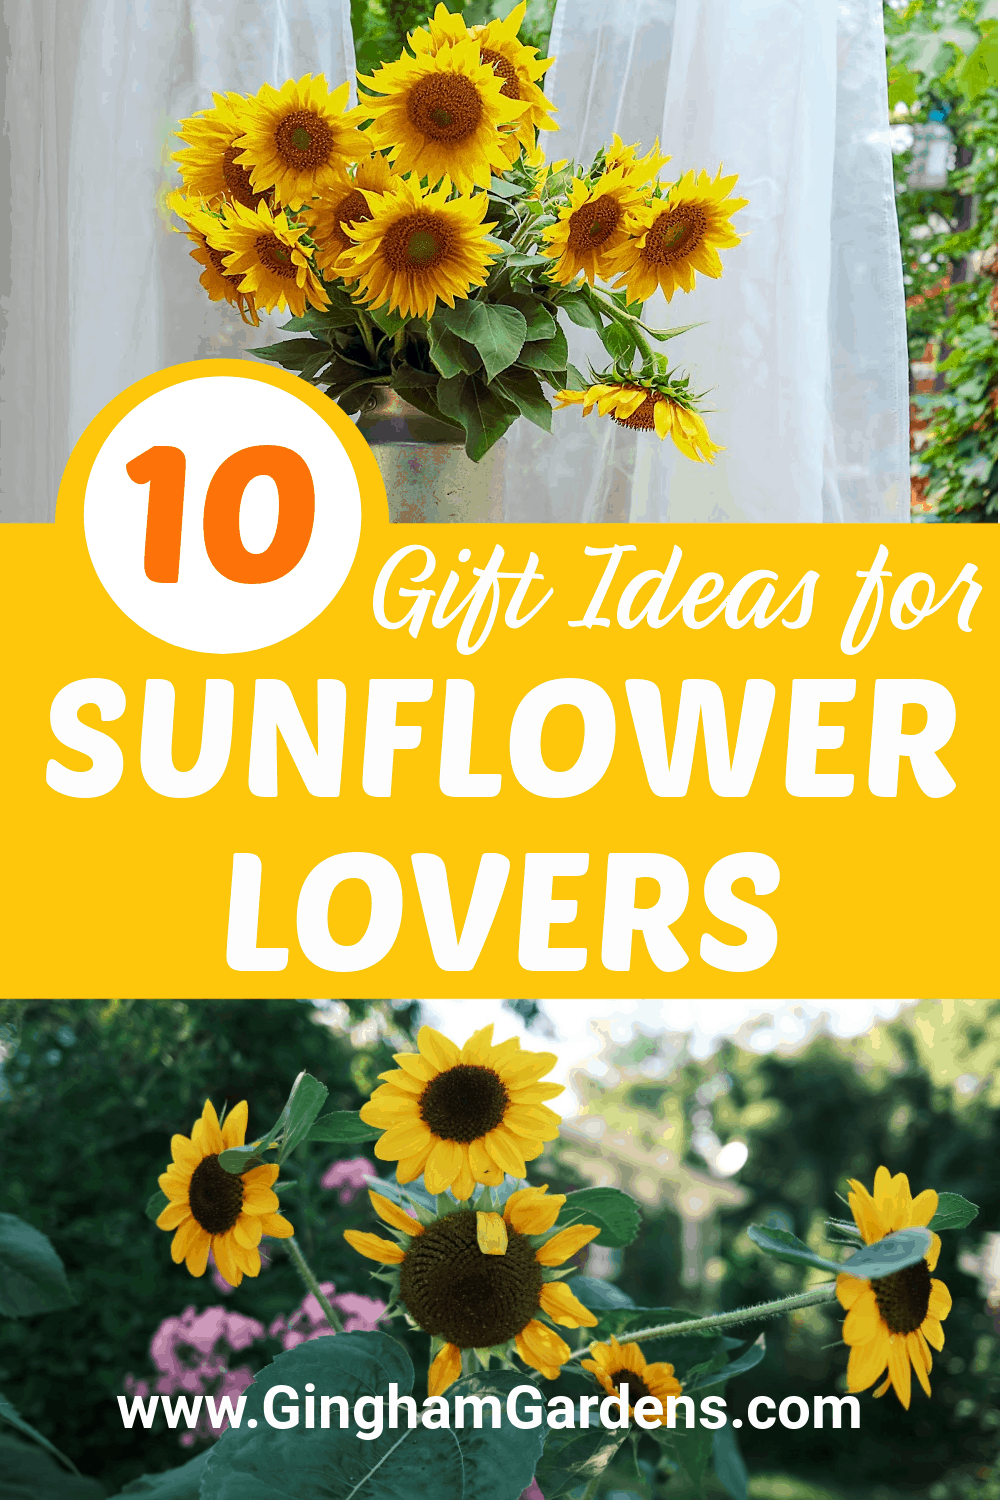 Images of Sunflowers with Text Overlay- 10 Gift Ideas for Sunflower Lovers